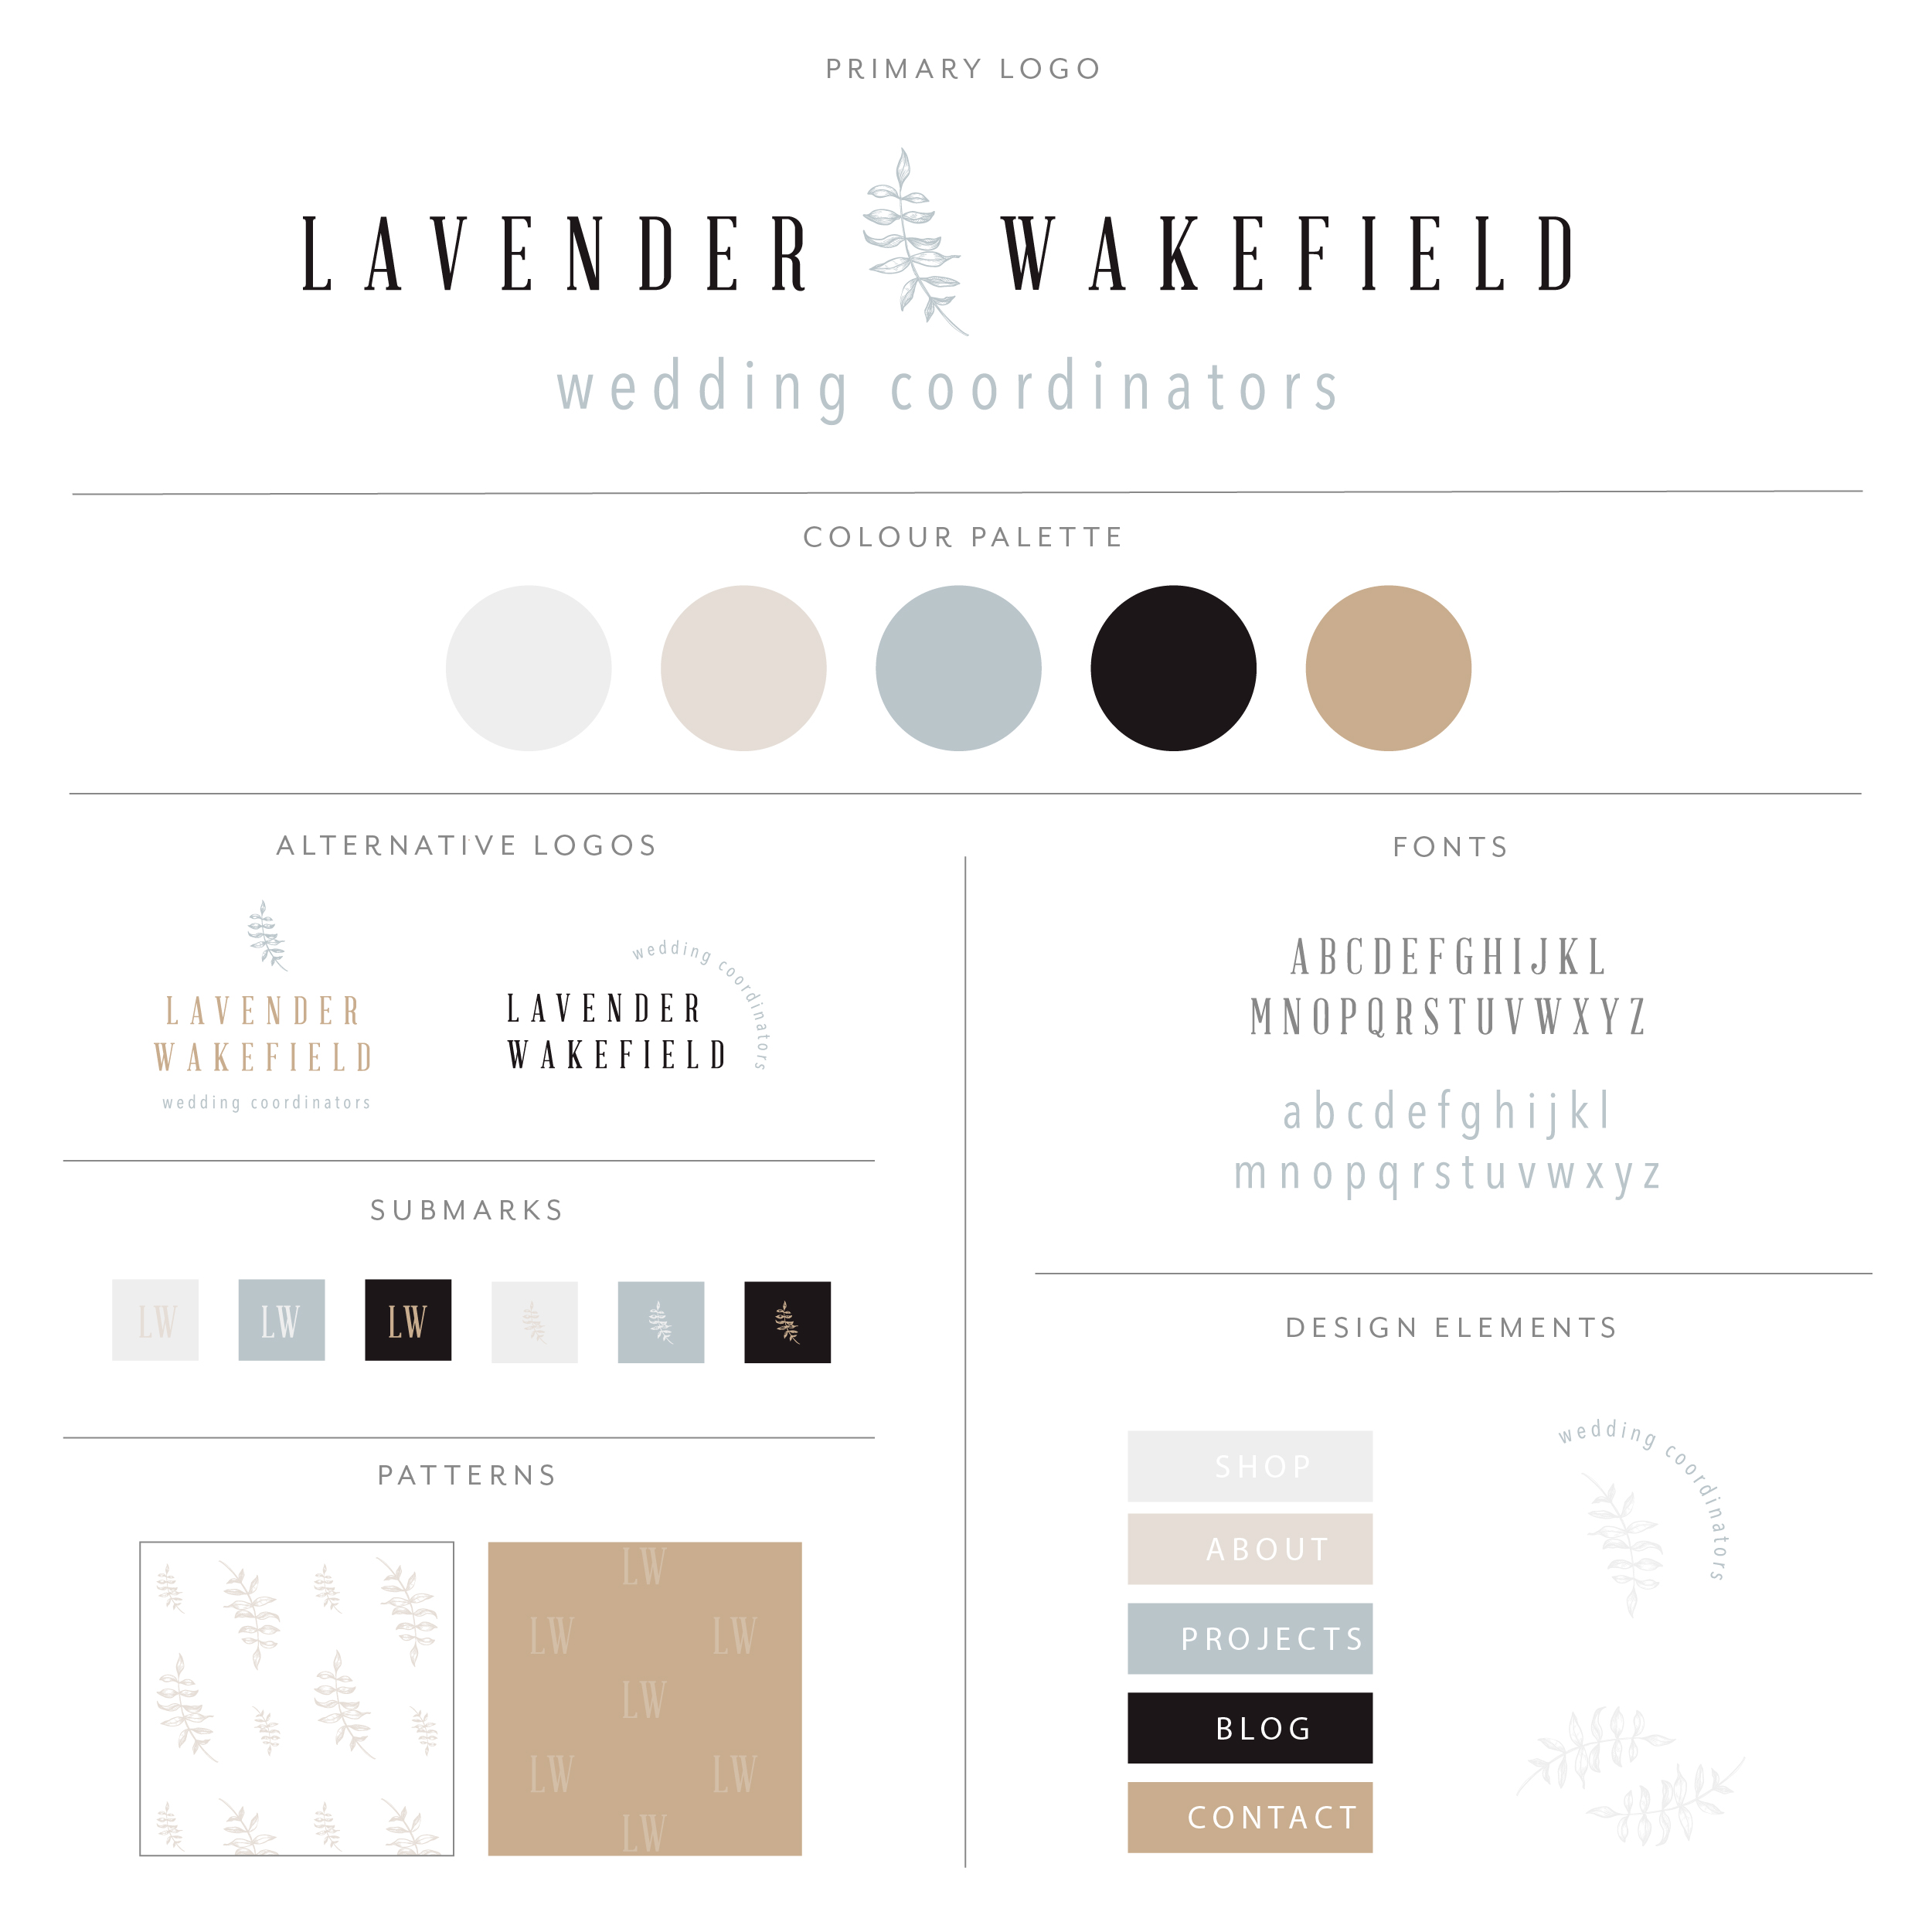 Lavender Wakefield uses tall serif font with fern leaf dividing words. Simplistic styling with a light and classic feel